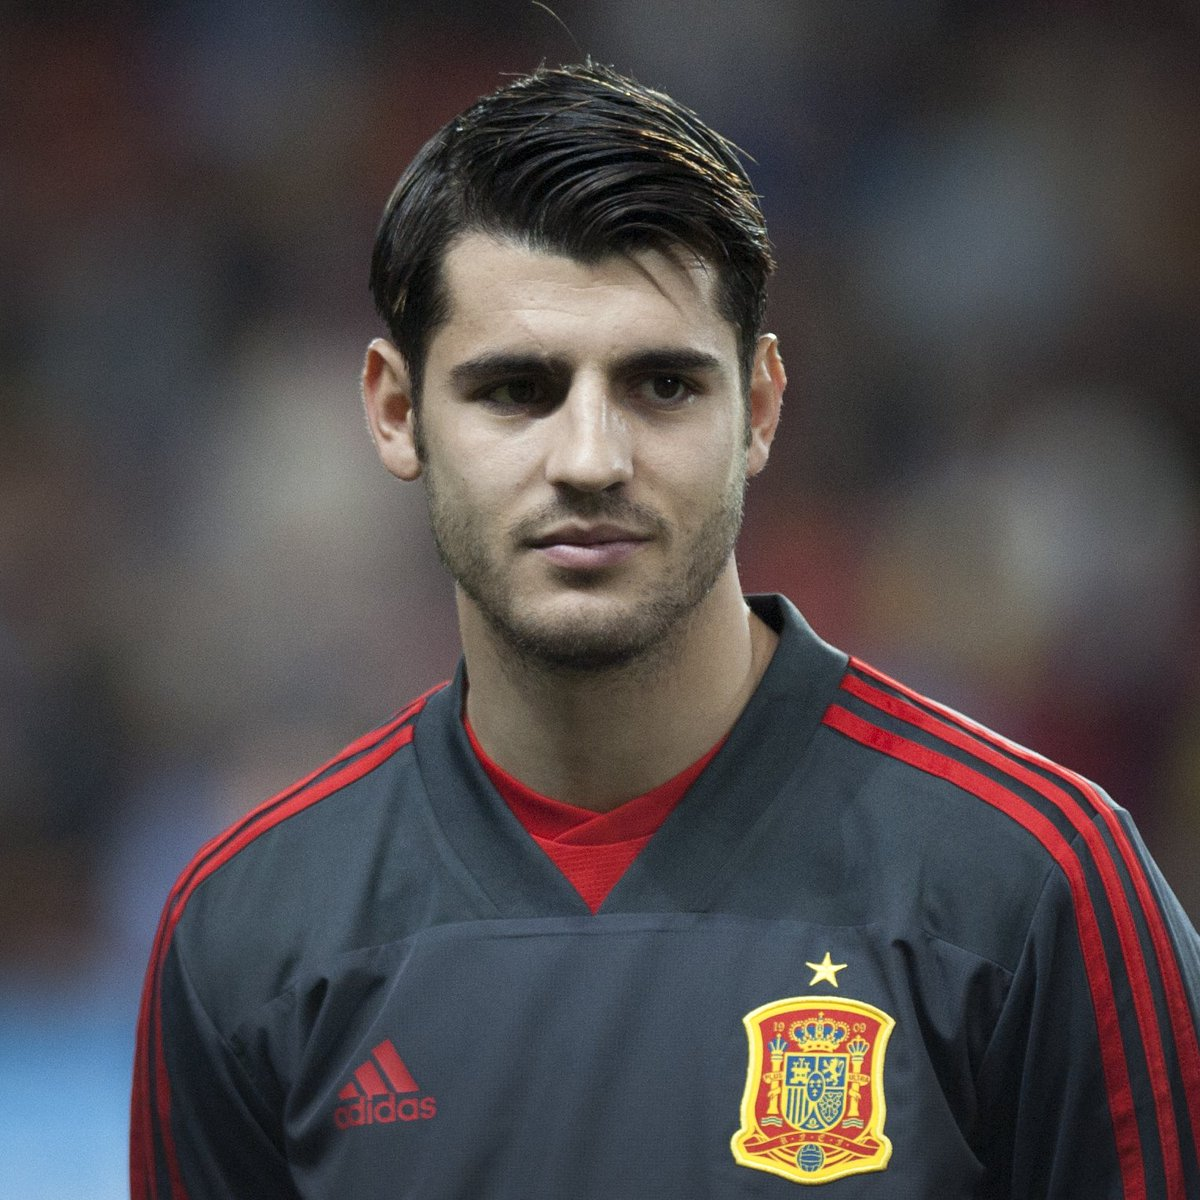 BREAKING: Alvaro Morata, Cesc Fabregas, Marcos Alonso and Hector Bellerin have all been left out of Spain's World Cup squad. #SSN